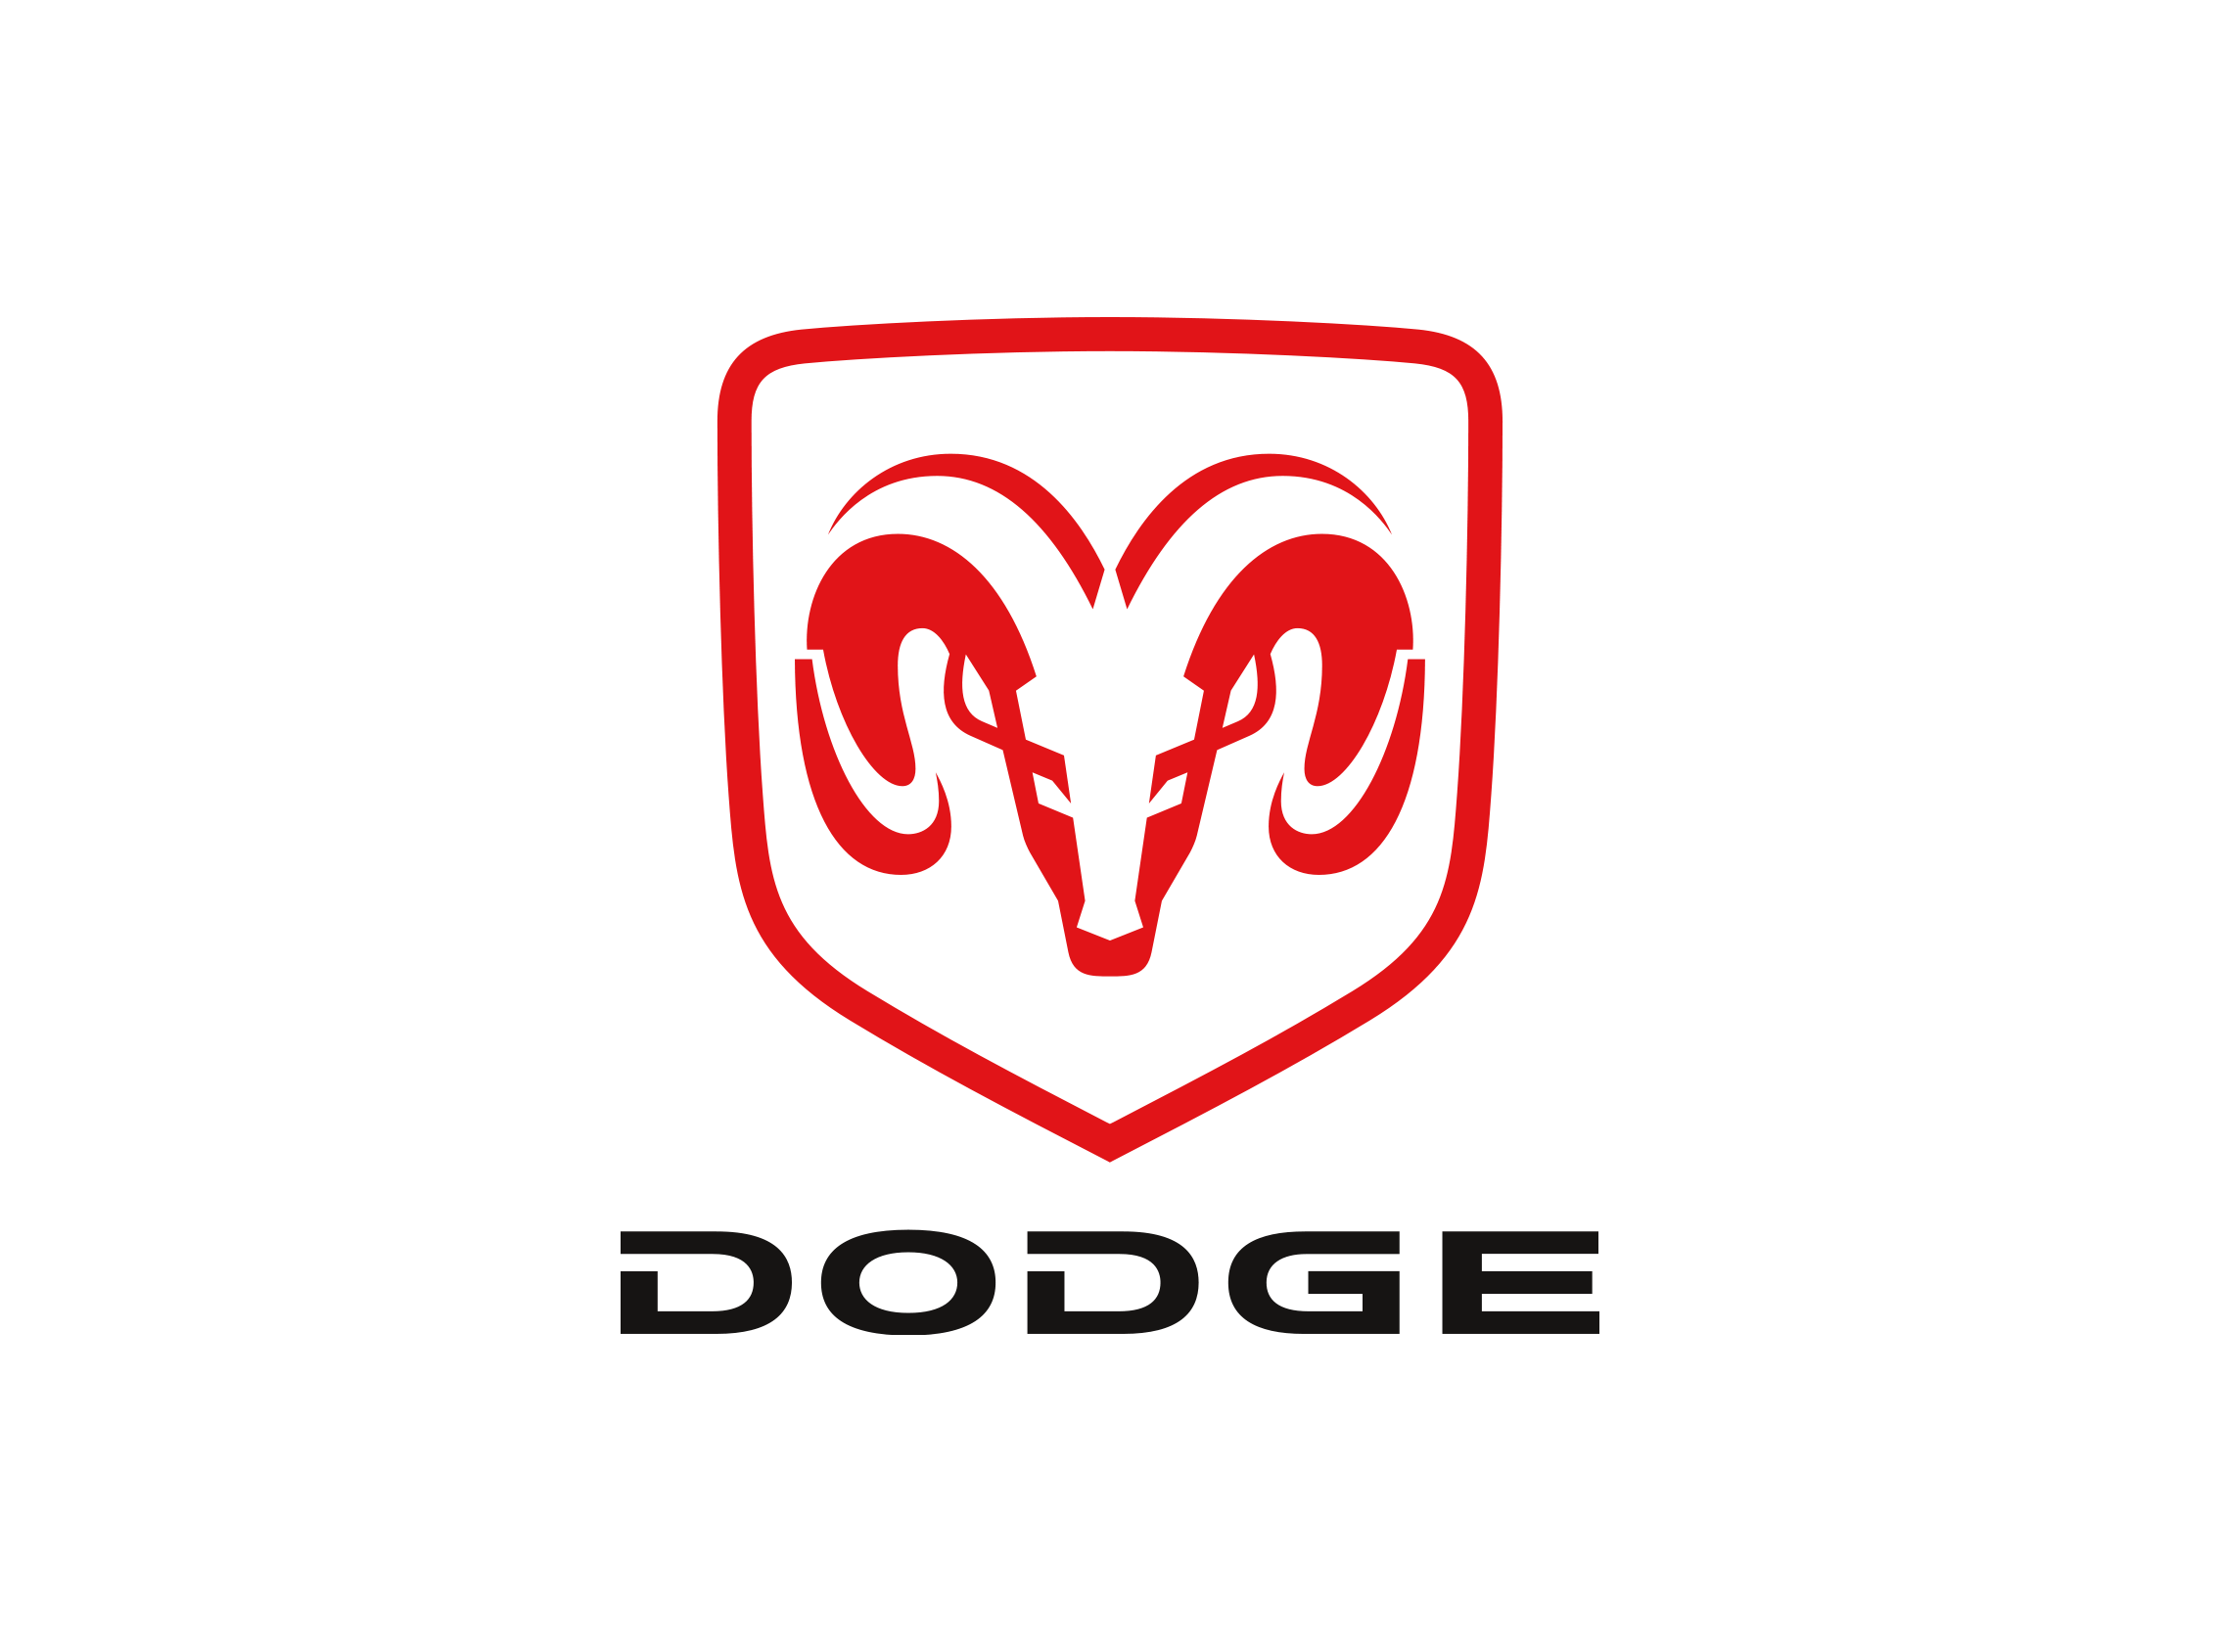 DODGE MOTOR IMPORT BRANDS VOITURE IMPORT USA MIAMI IMPORT VOITURE EUROP IMPORT USA MOTOR IMPORT7 - BUICK importation voiture des Etats Unis BUICK votre mandataire automobile usa